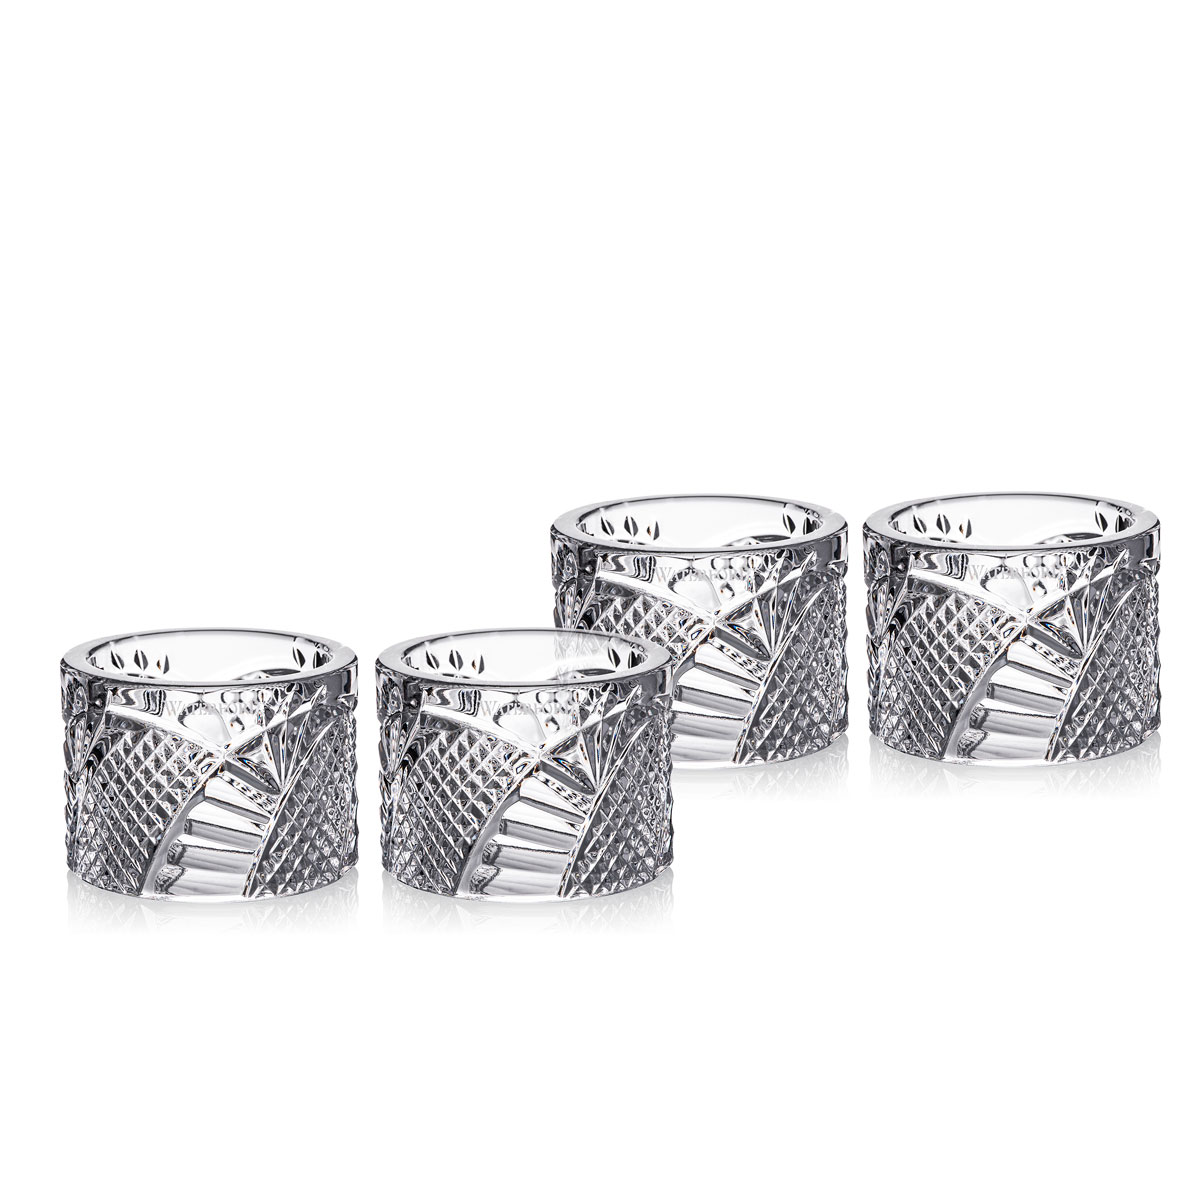 Waterford Crystal Seahorse Napkin Ring, Set of Four